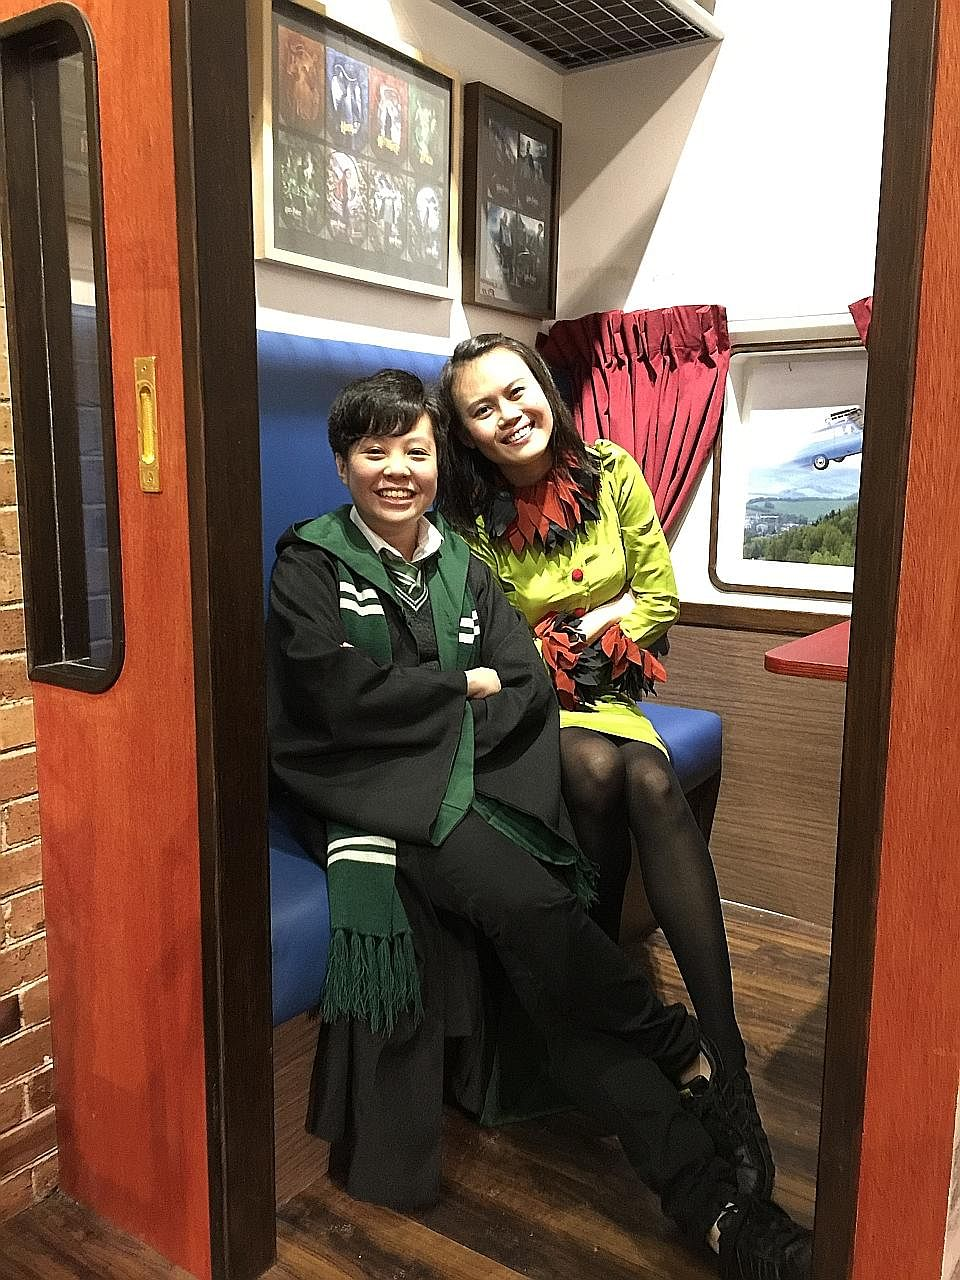 Ms Chin Xuan (far left), in a Slytherin school uniform, and Ms Jo Chua, wearing a Rita Skeeter outfit she made herself. The ardent Harry Potter fans are sitting in a Hogwarts Express train carriage at the Singapore Philatelic Museum's Harry Potter exhibit